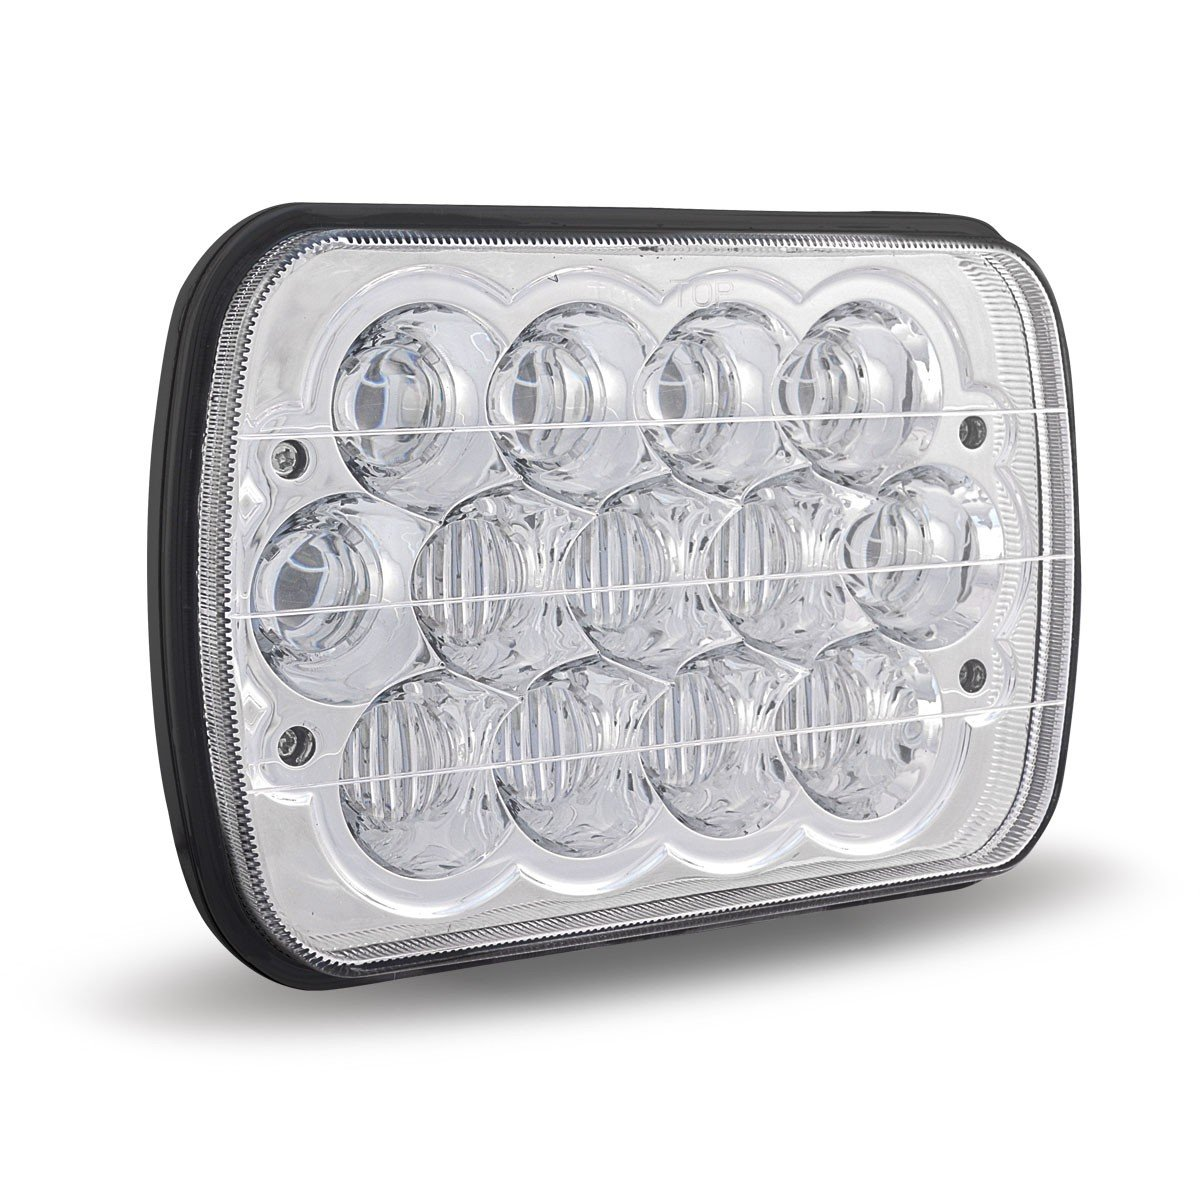 Trux Accessories 7in. x 5in. High/Low Beam LED Semi-Truck Headlight - Chrome, Model Number TLED-H52 by Trux Accessories